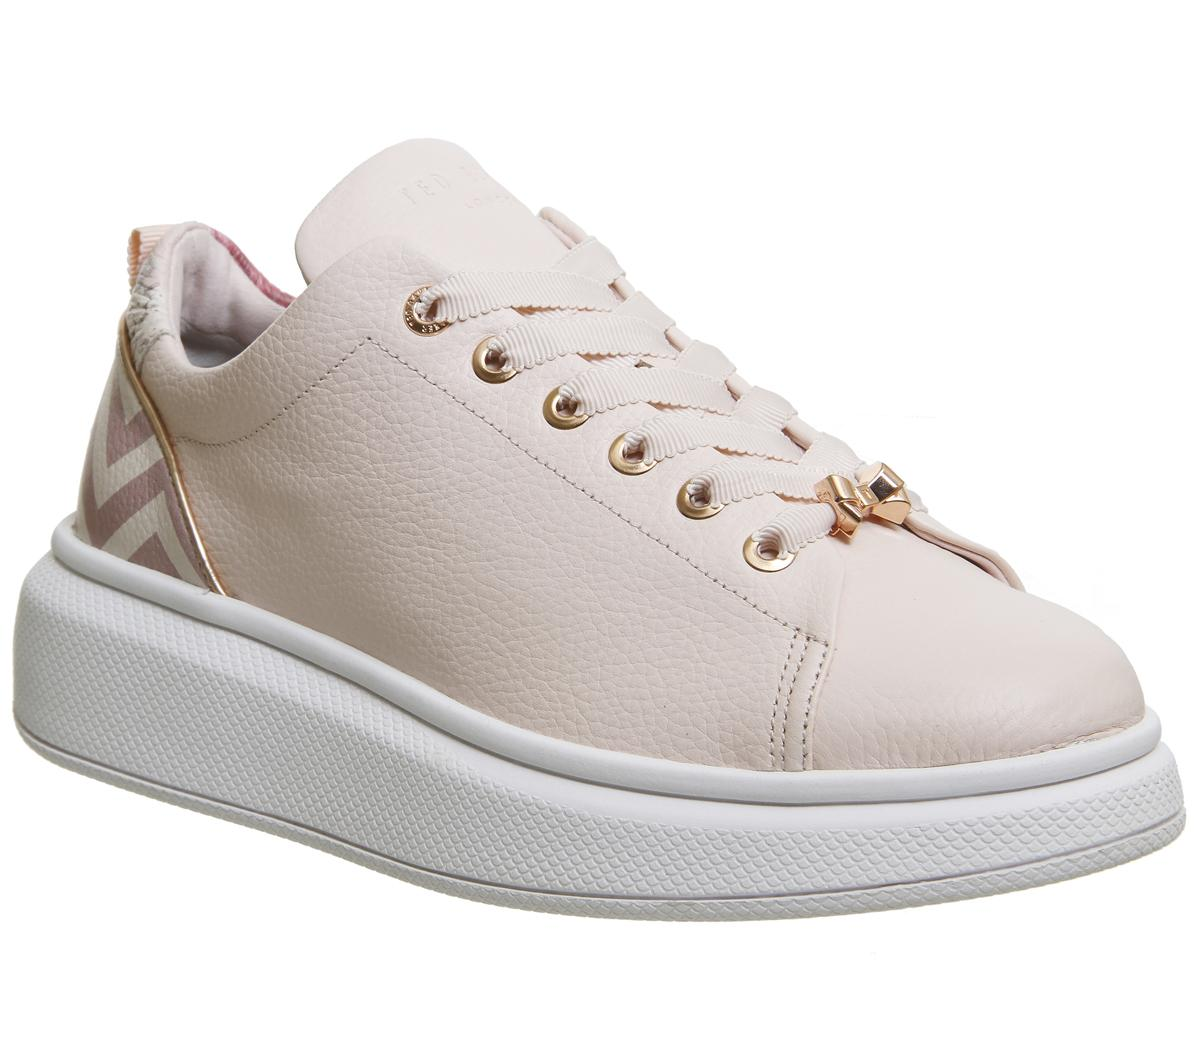 Womens Ted Baker Ailbe Sneaker Light Pink Palace Gardens